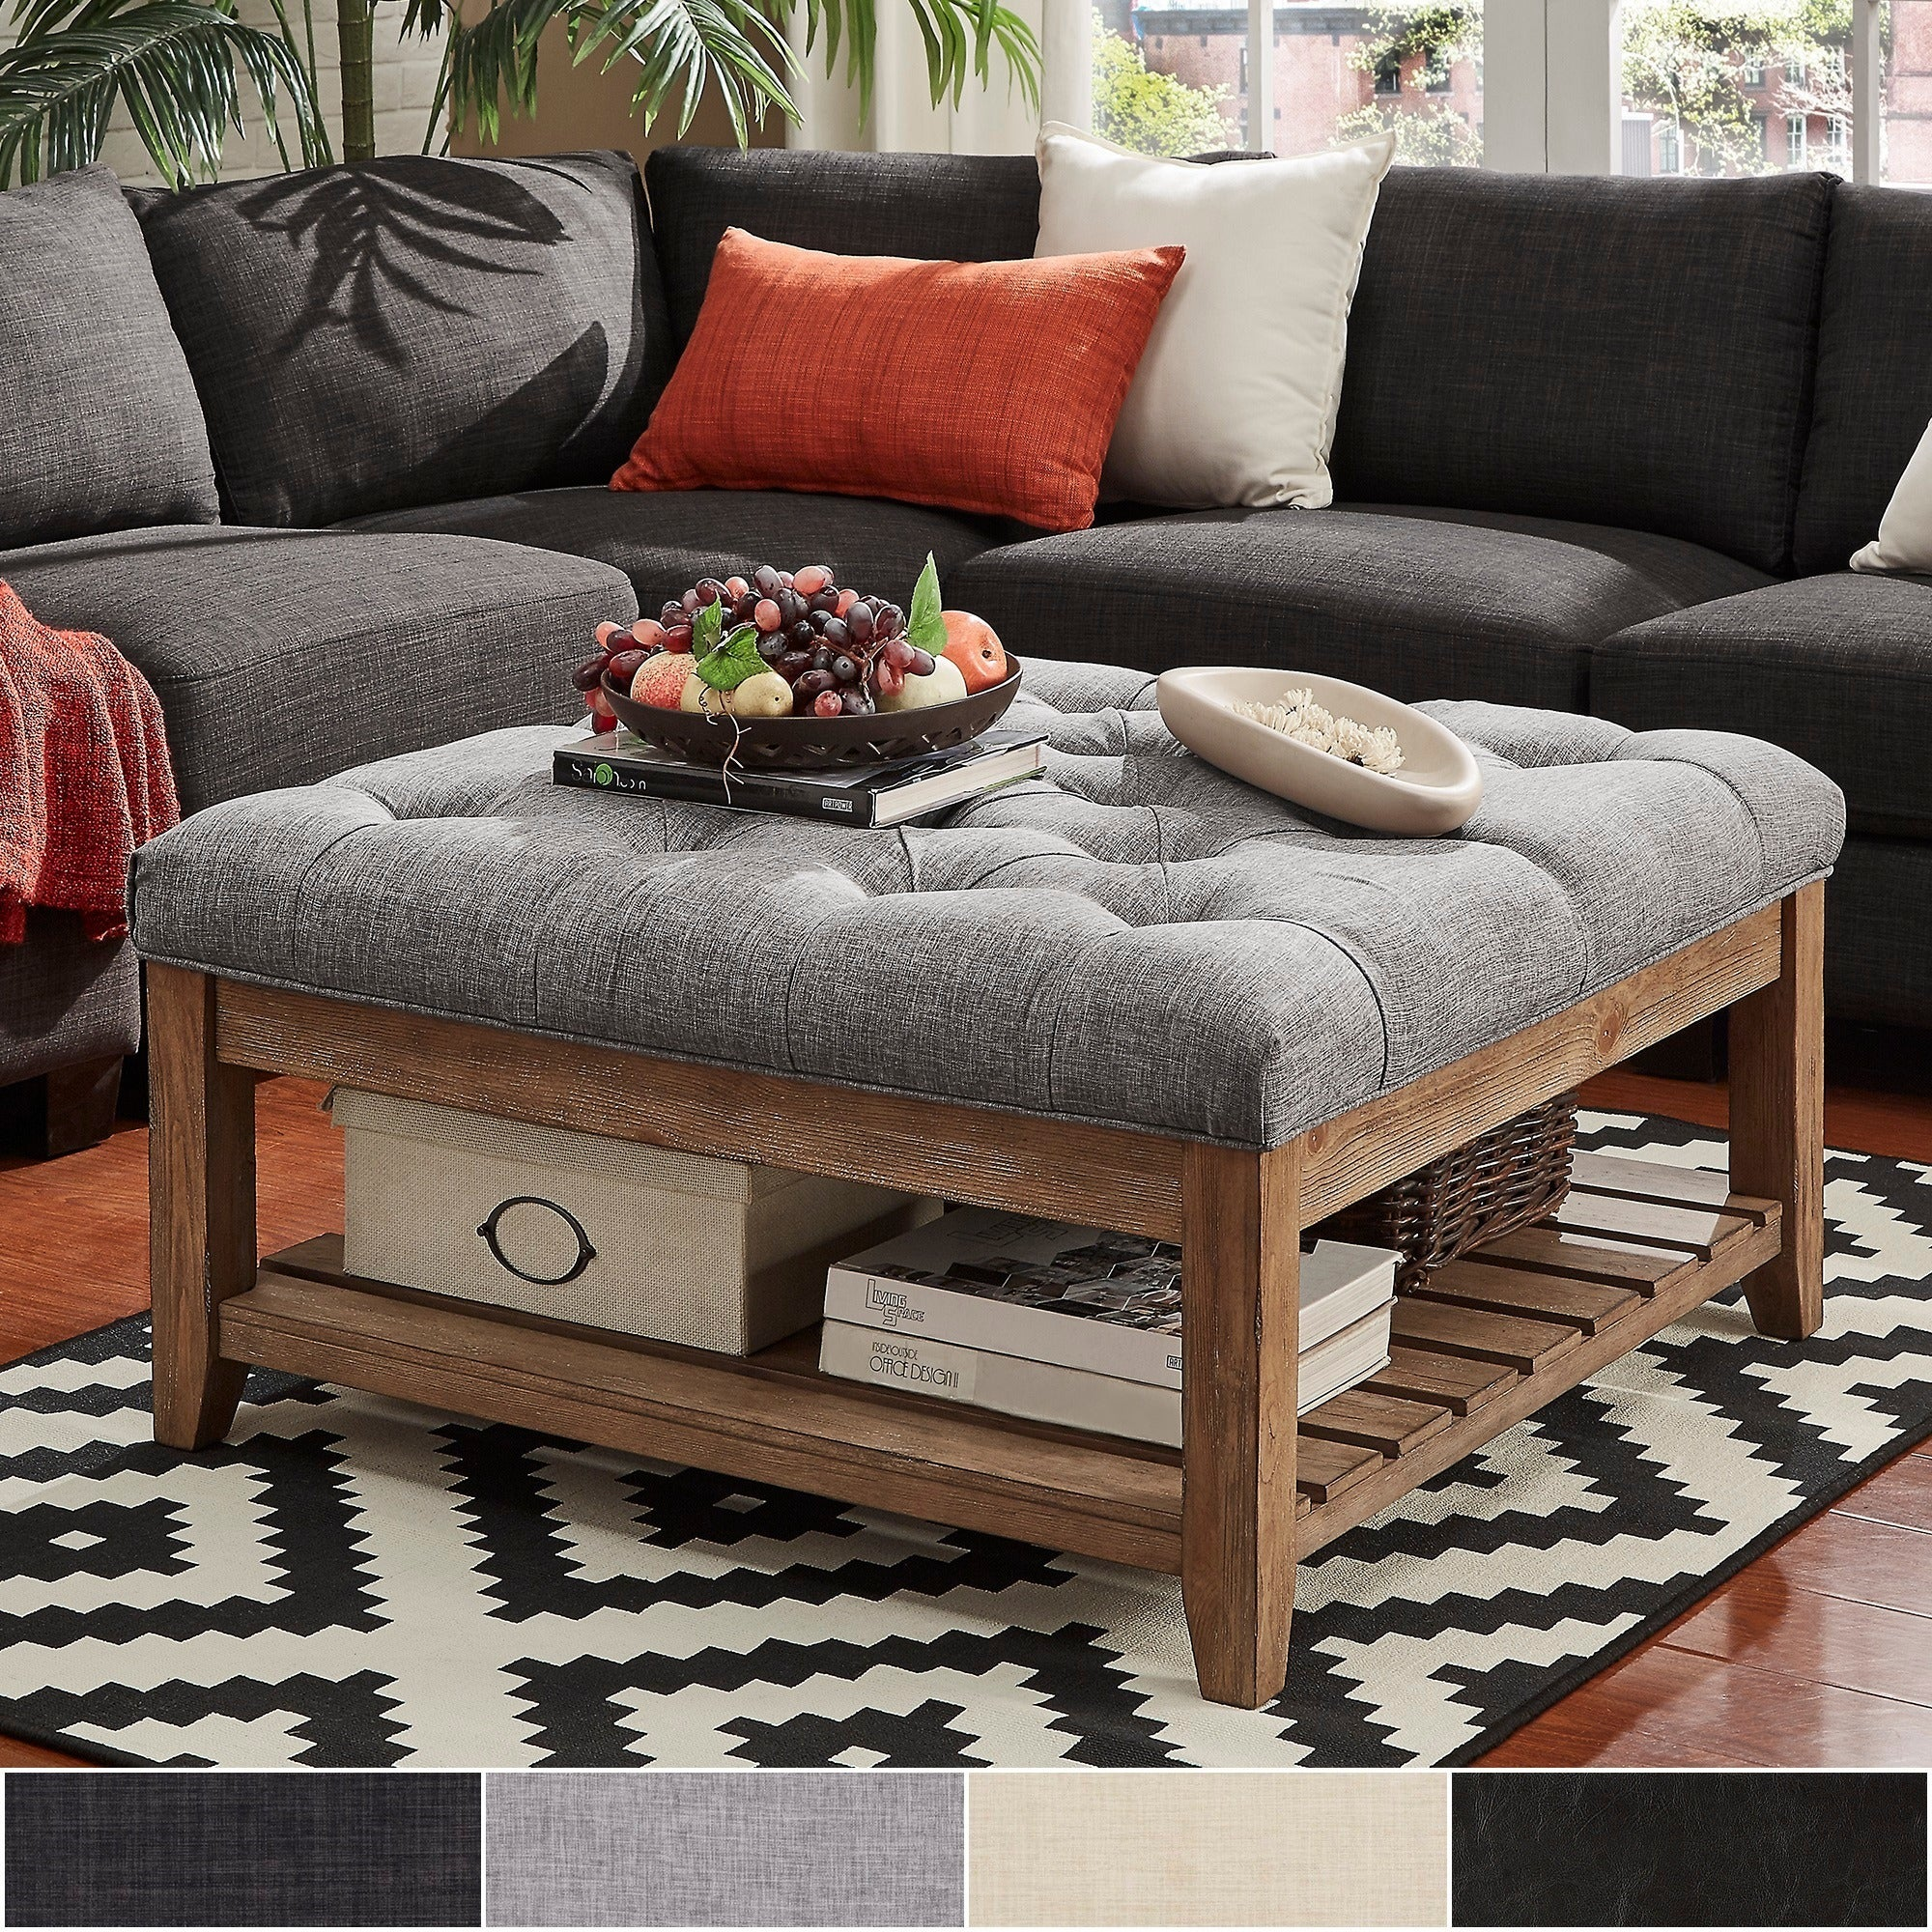 Lennon Pine Planked Storage Ottoman Coffee Table By Inspire Q Artisan On Sale Overstock 13447192